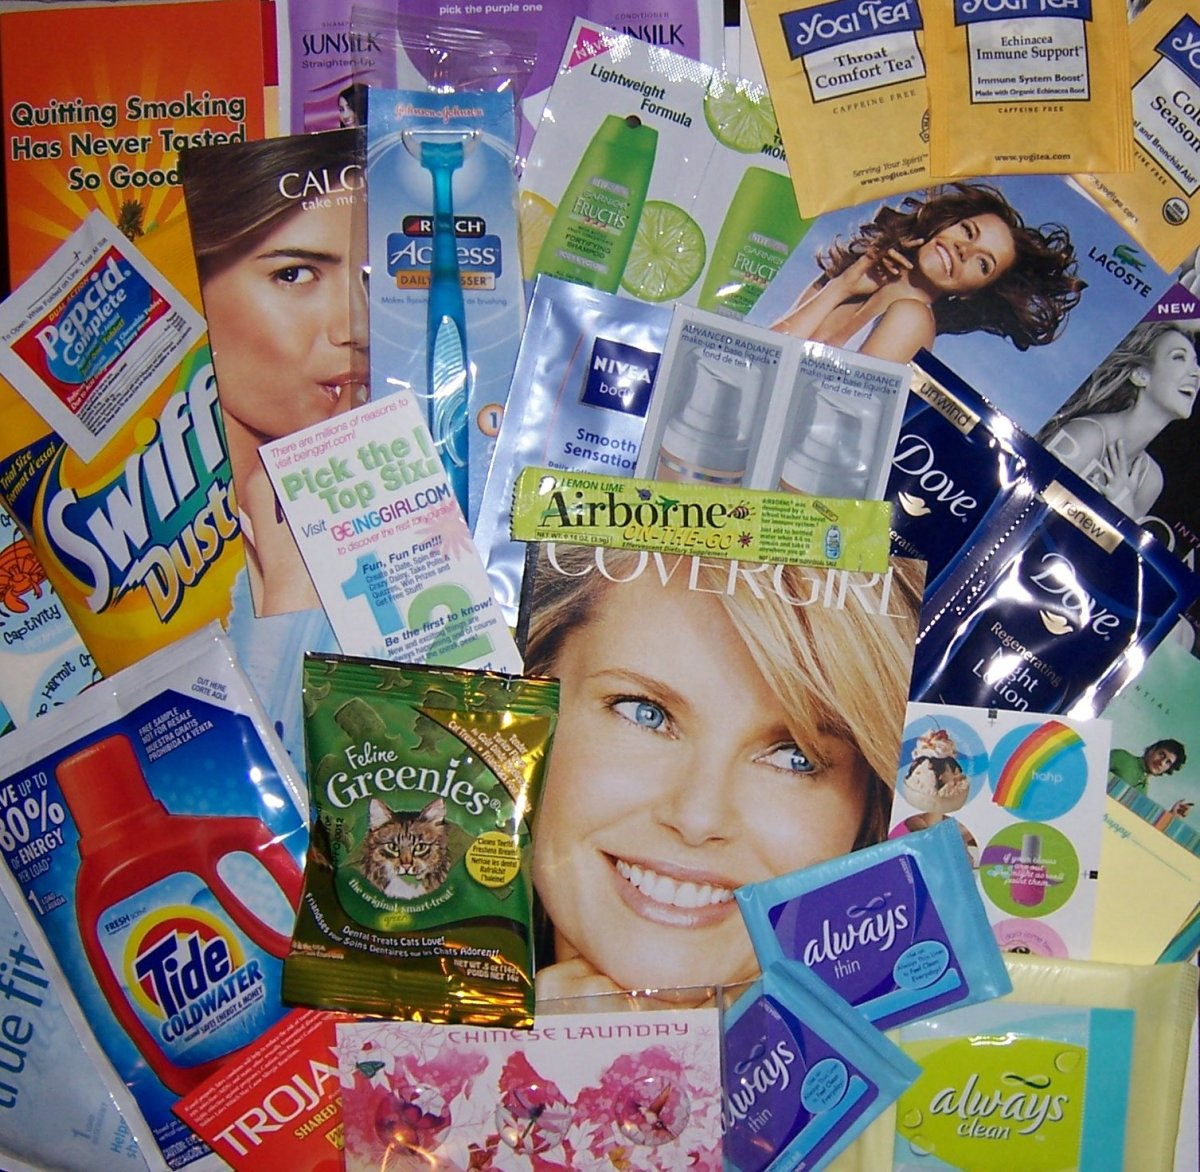 Free Samples! NoSurveys! Nothing to buy! Just totally free stuff! Free!